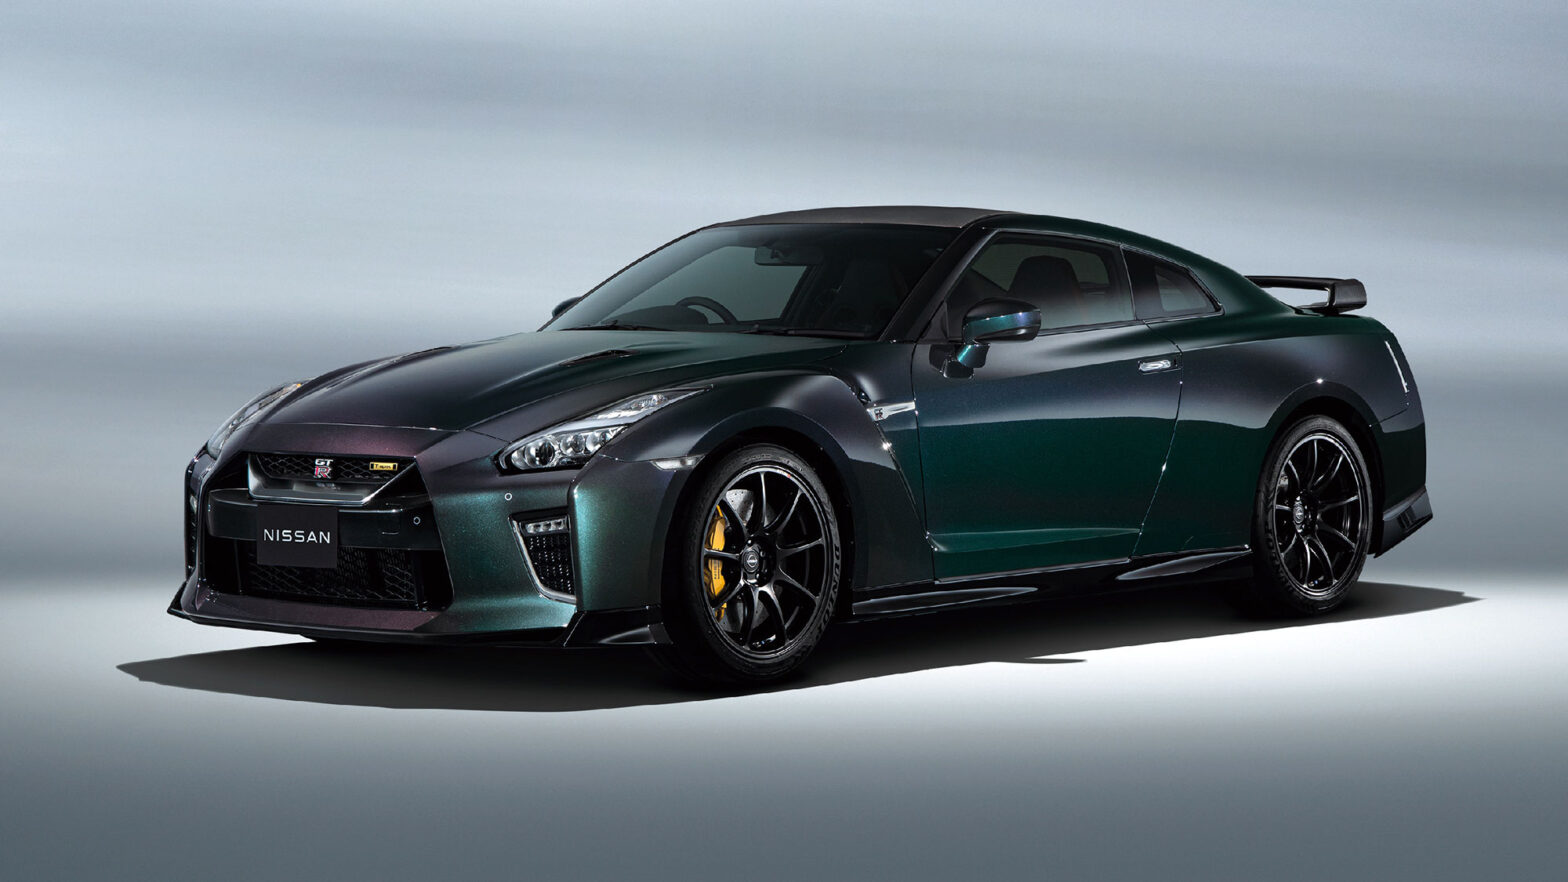 Limited Edition Nissan GT-R T-spec Coupe